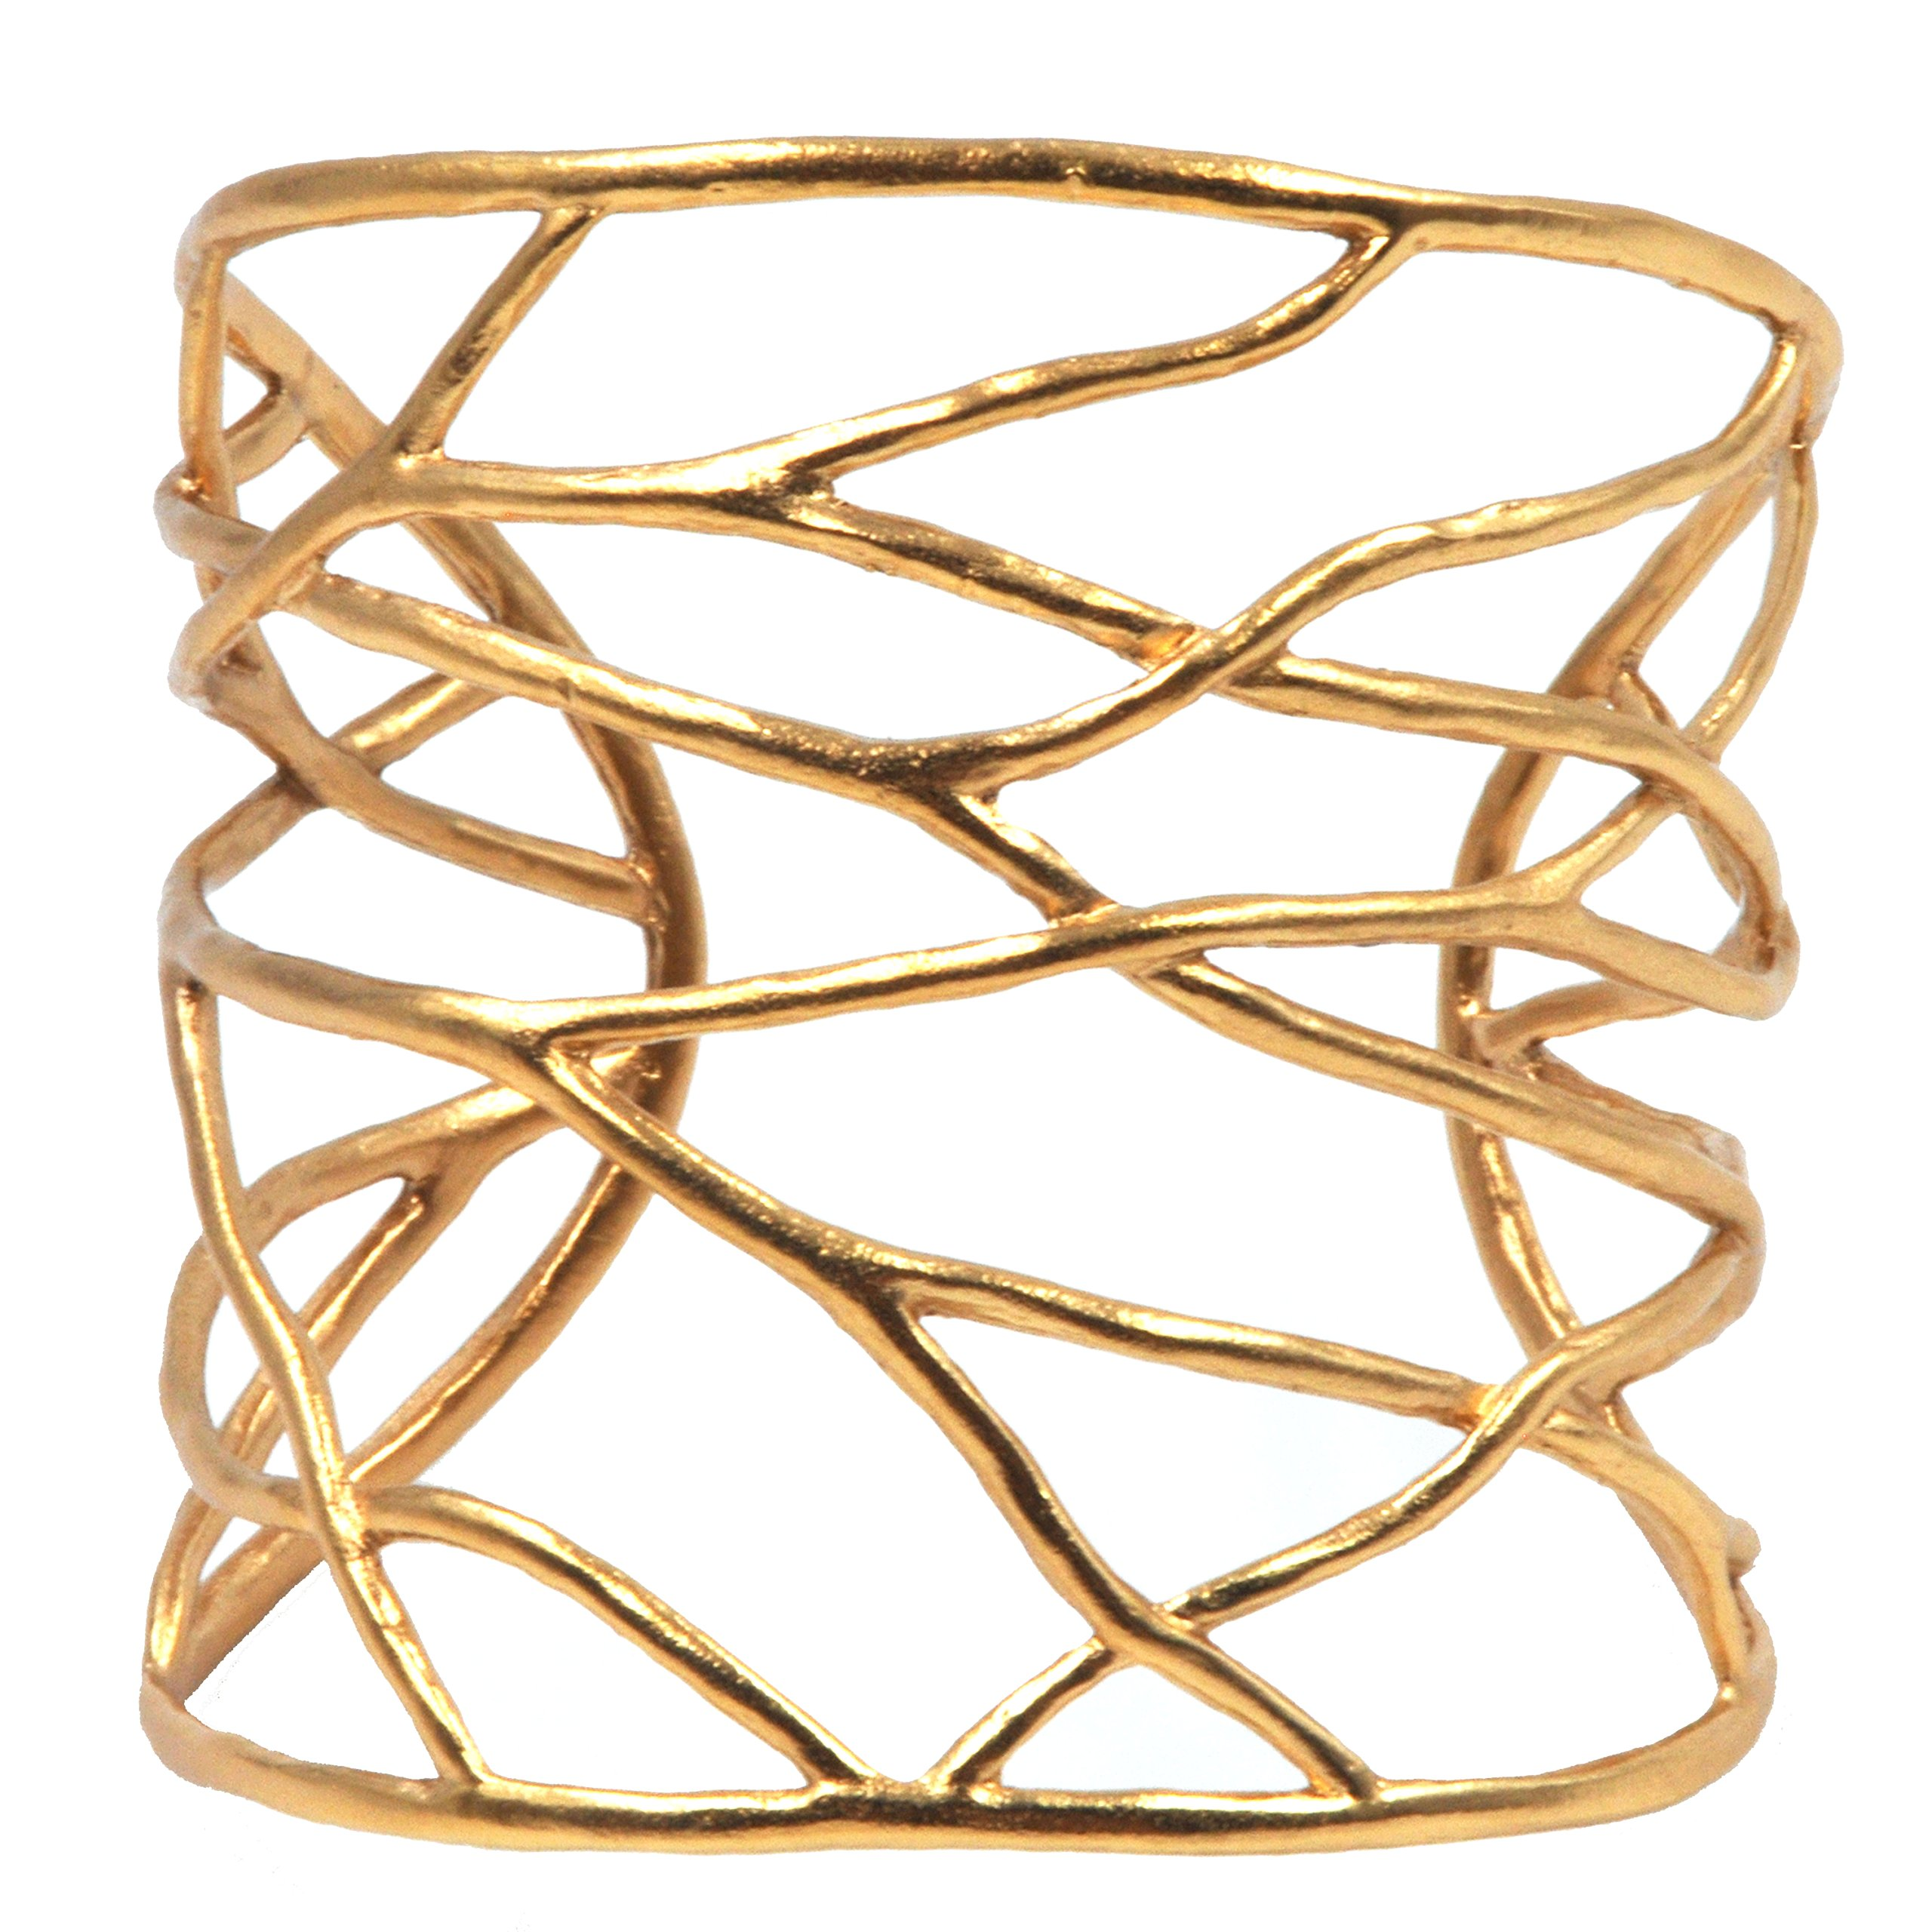 Intricate Branches Cuff Bracelet, Nature Inspired Eco Chic Designs by Mercedes (Gold, Large)